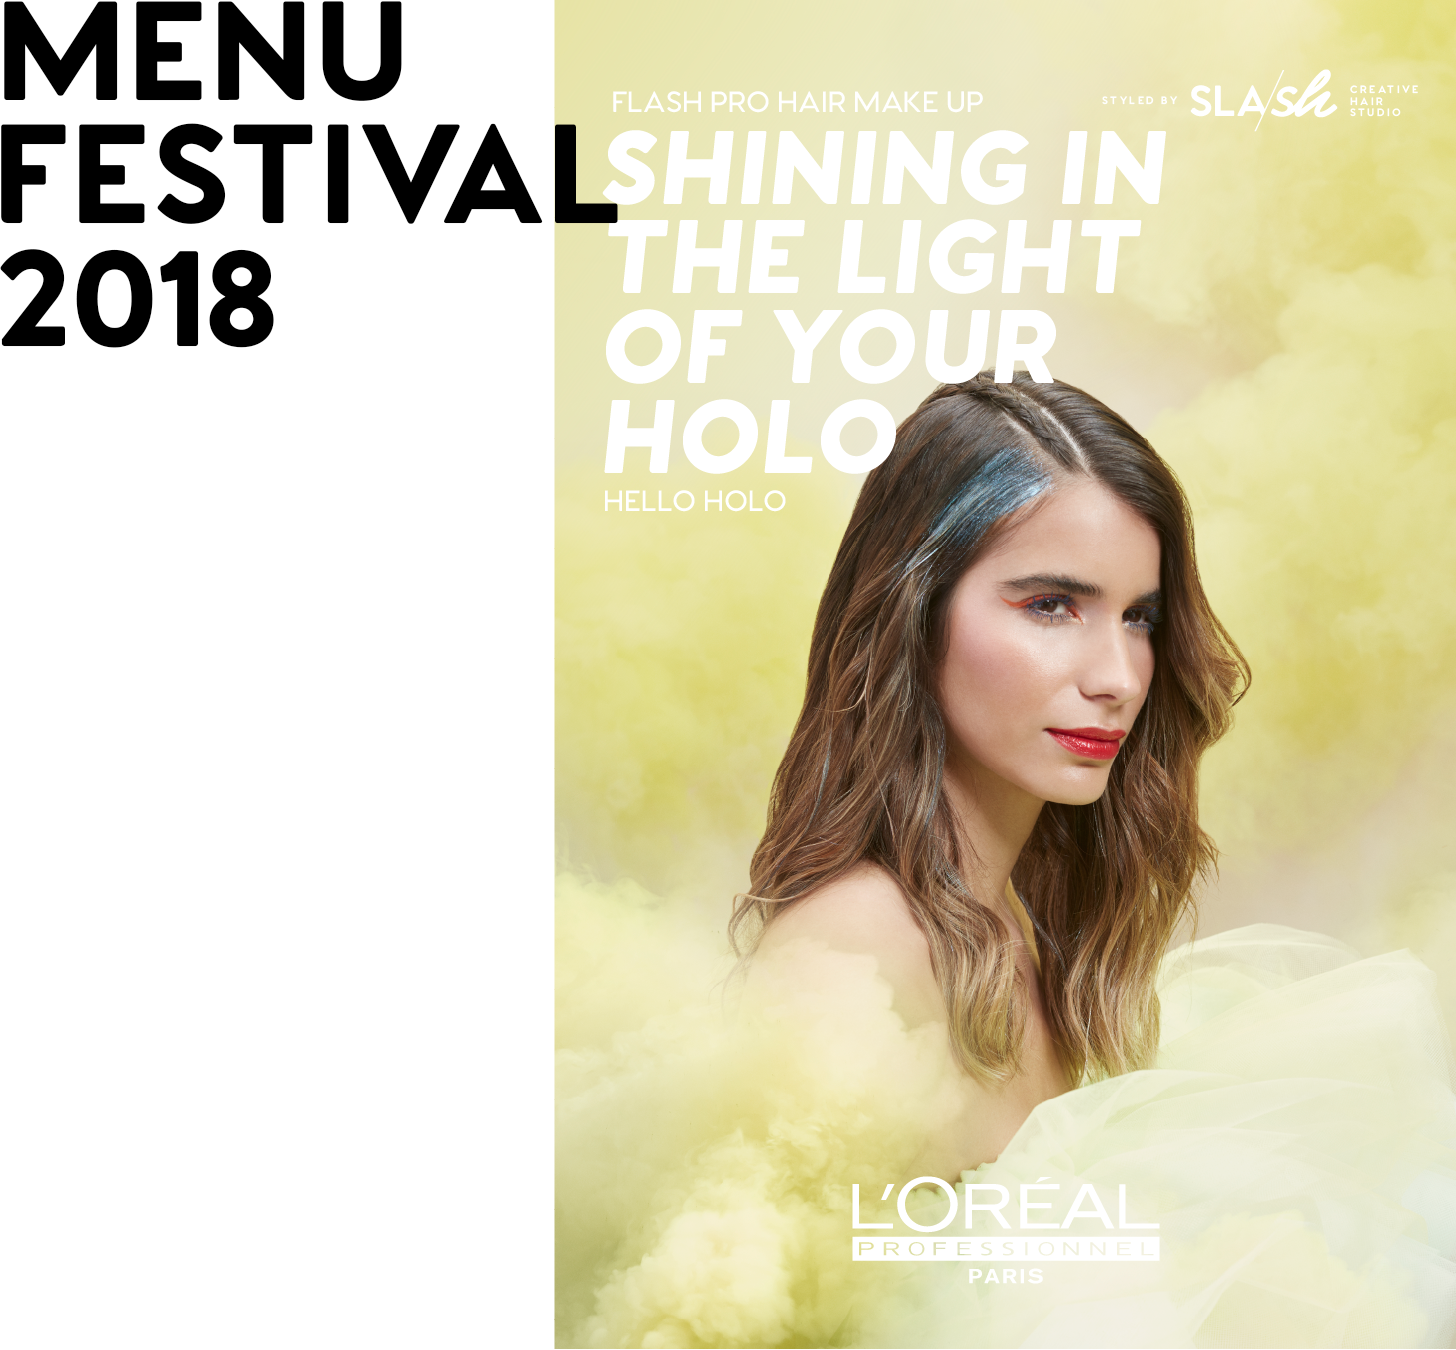 menu-festival-2018_5_shining_in_yhe_light_of_your_holo